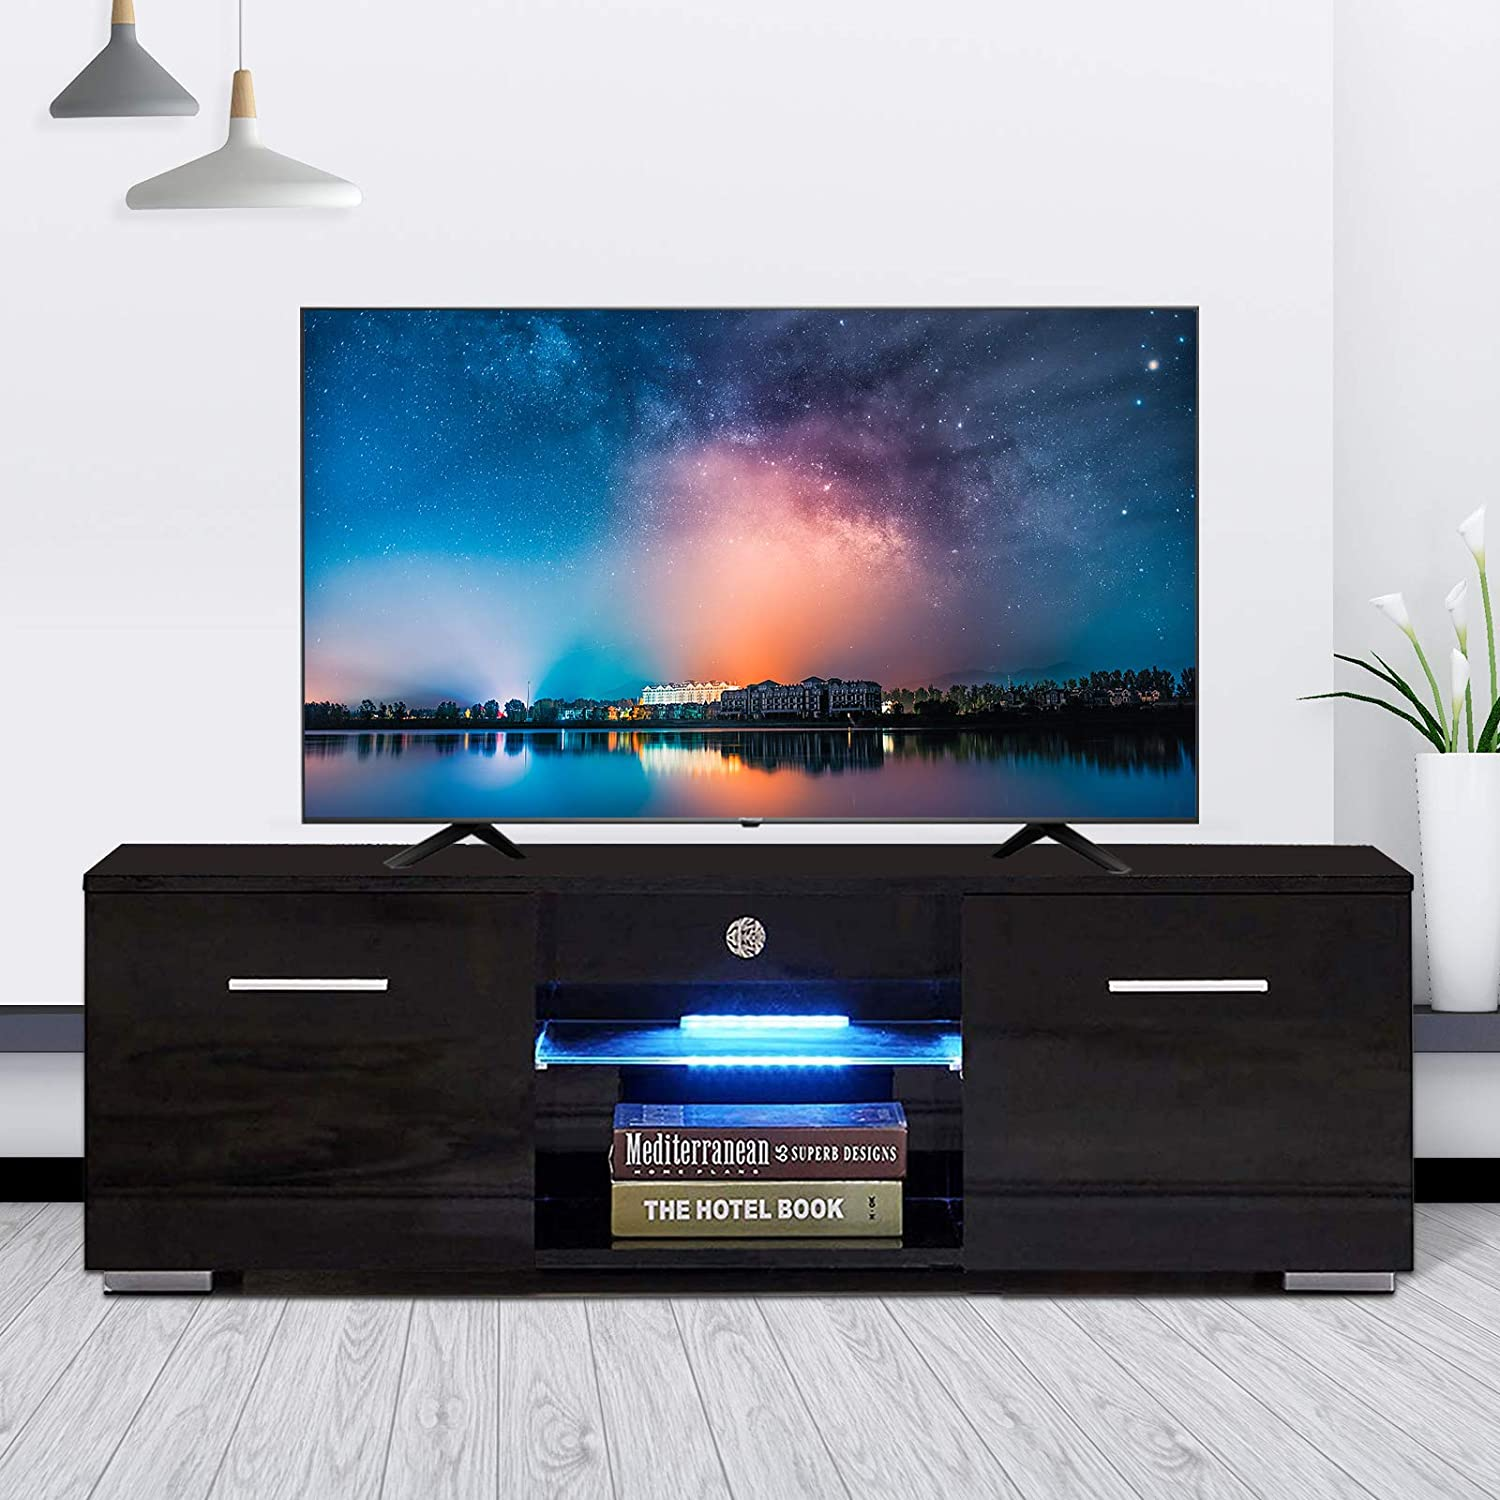 High Gloss Tv Stand With Led Lights Modern Tv Stand For 50 In Tv Console Storage Cabinet With 2 Drawers For Living Room Black Furniture Decor